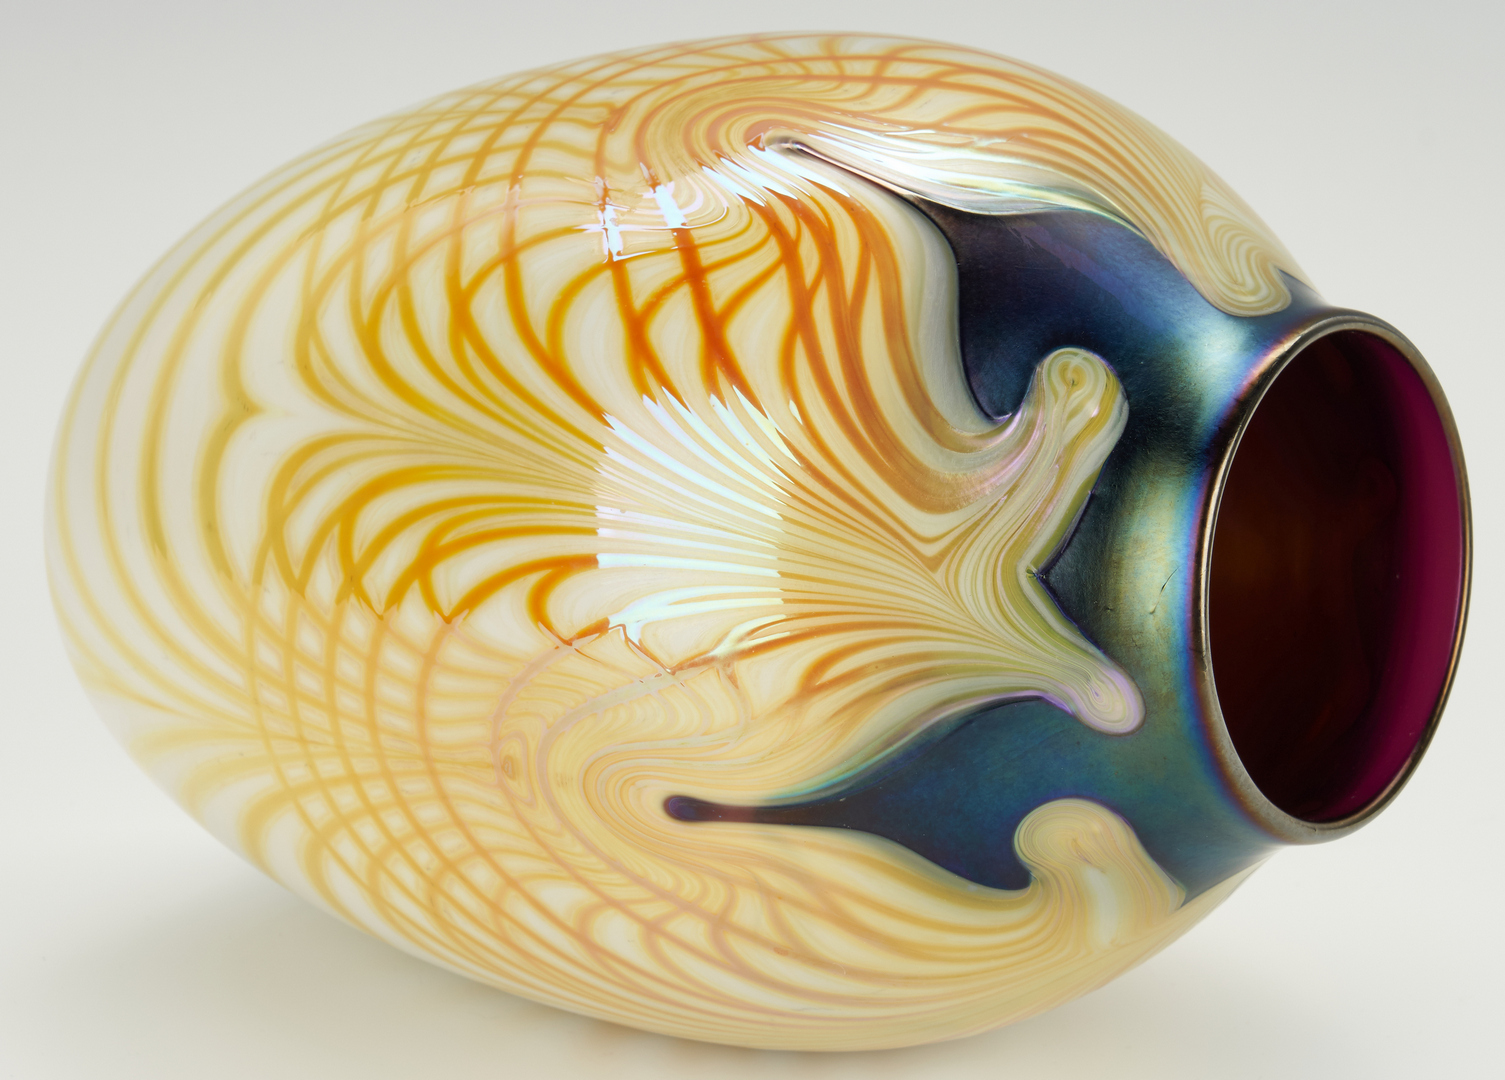 Lot 486: Charles Lotton Vase dated 1974